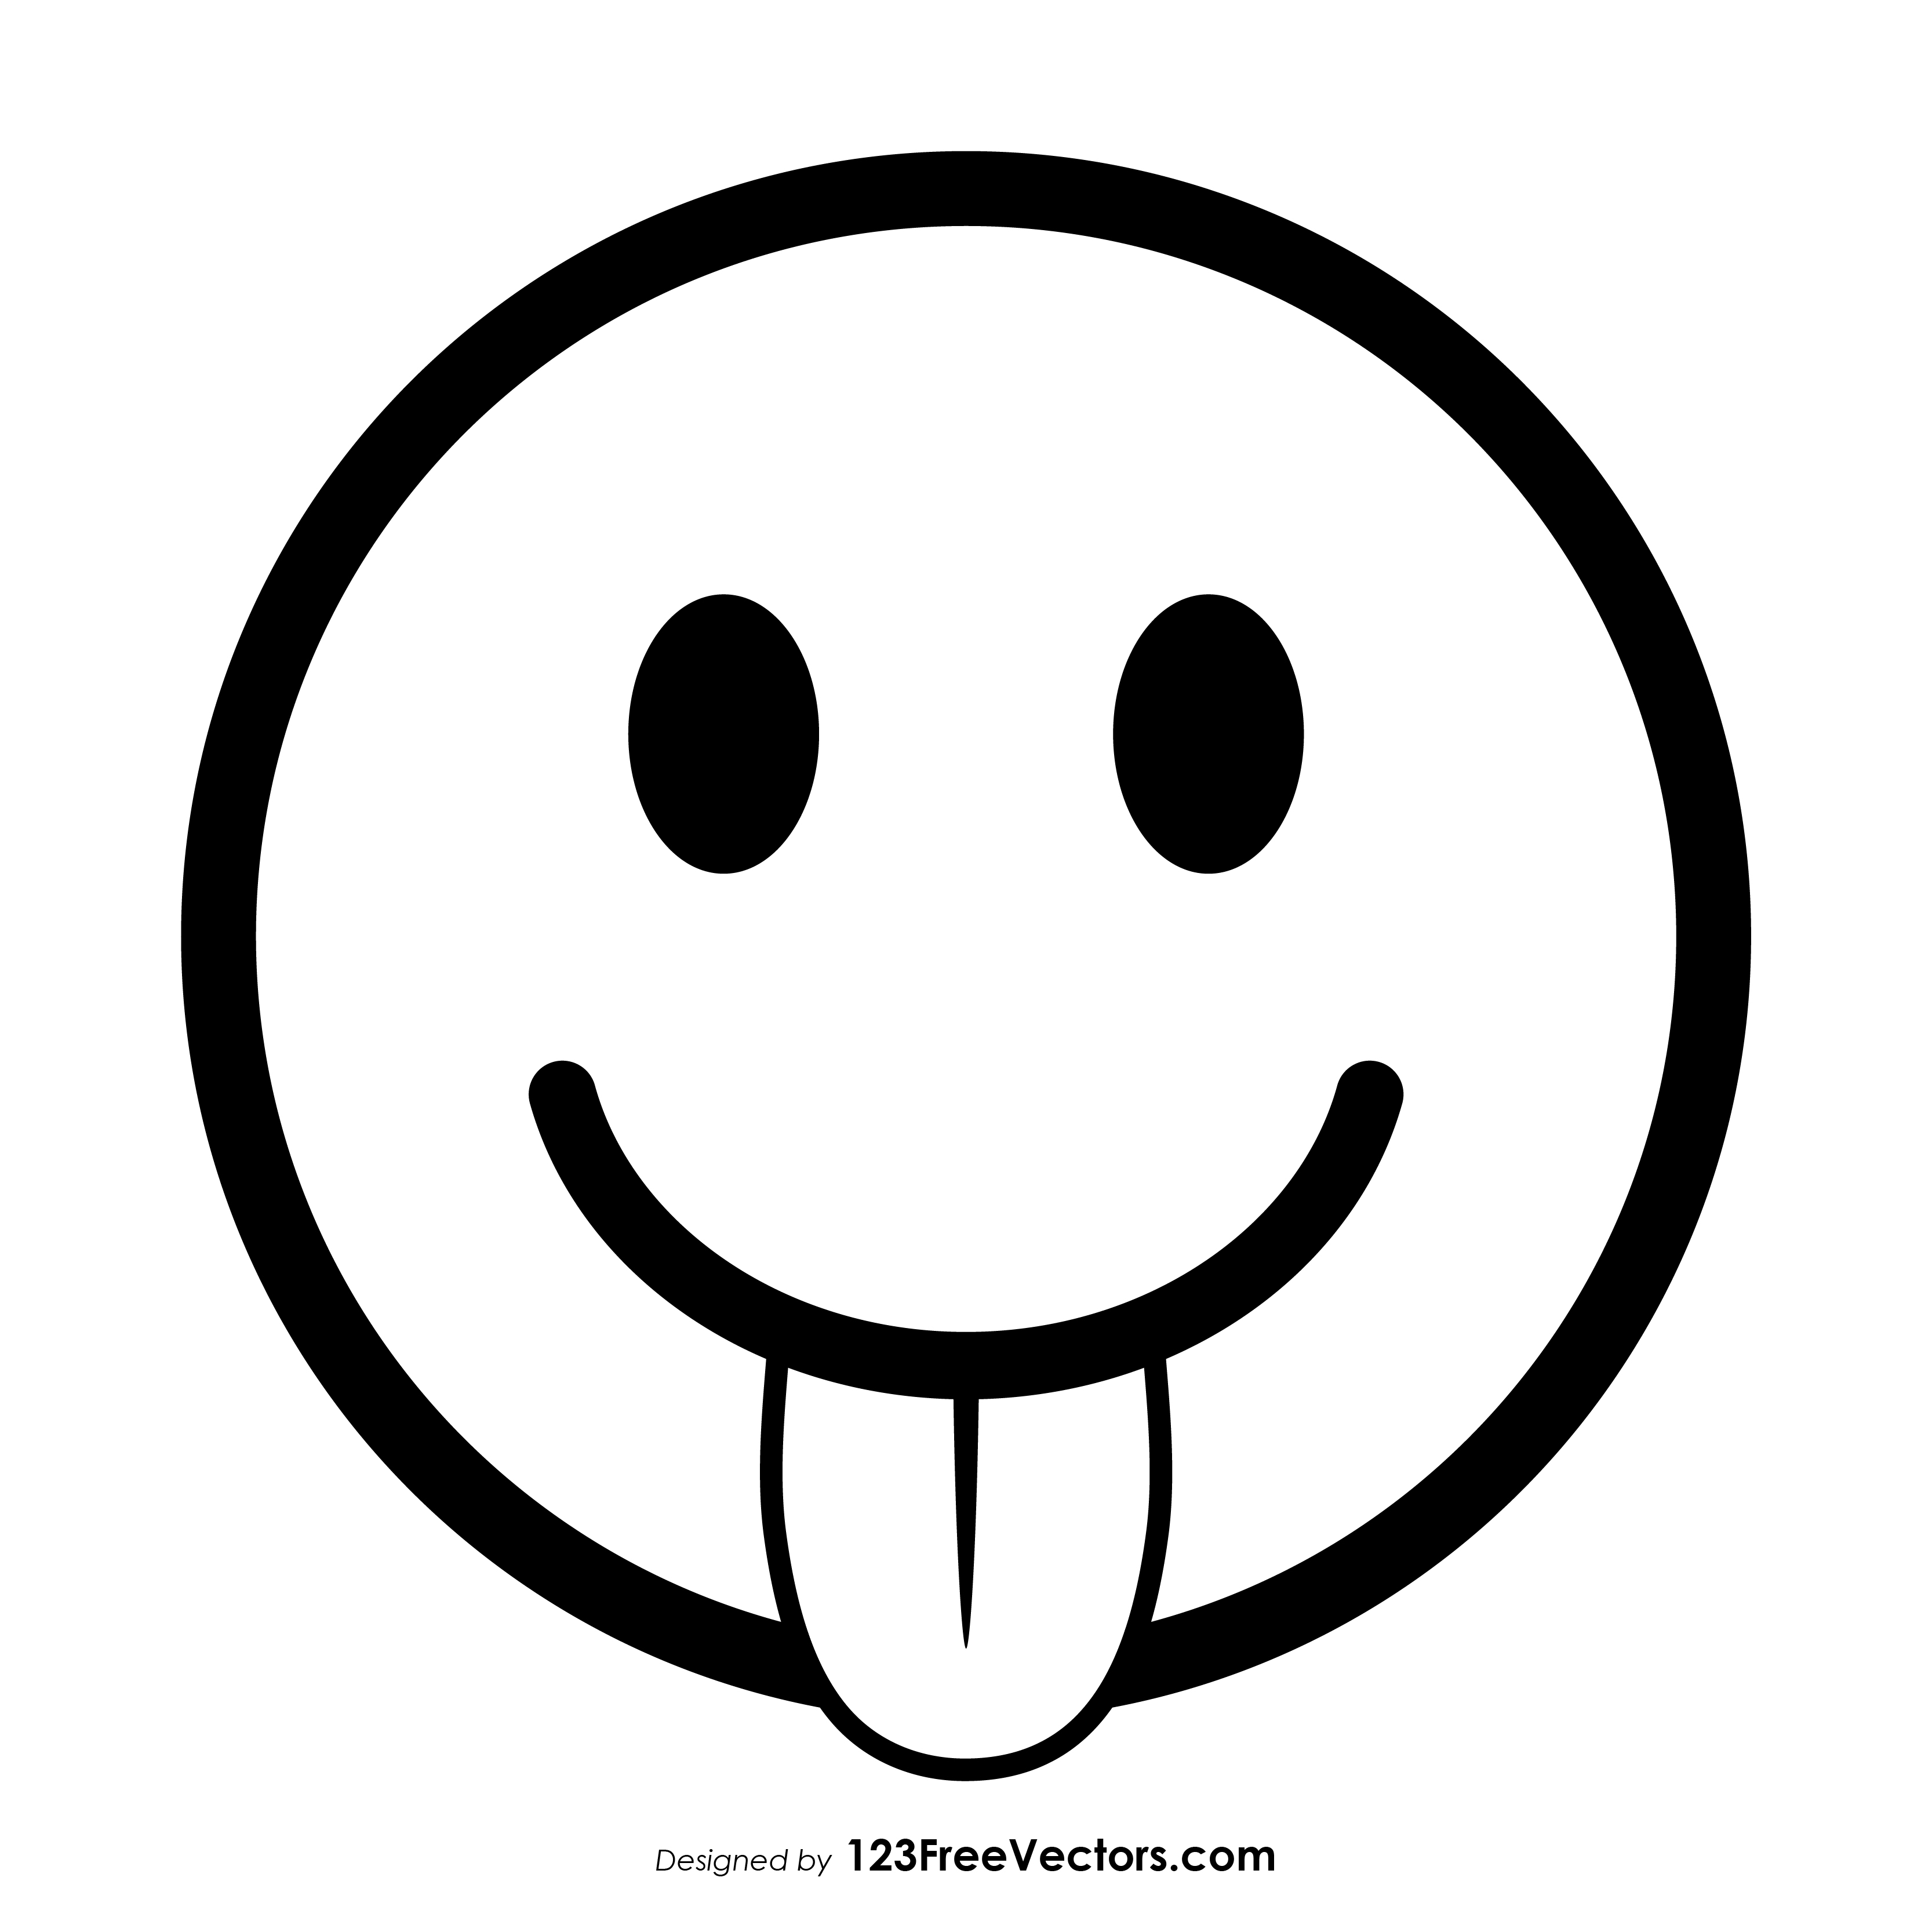 face with stuck out tongue and tightly closed eyes emoji clipart Exercise Emoji Clip Art face with tongue emoji outline vector free face savoring food emoji clipart